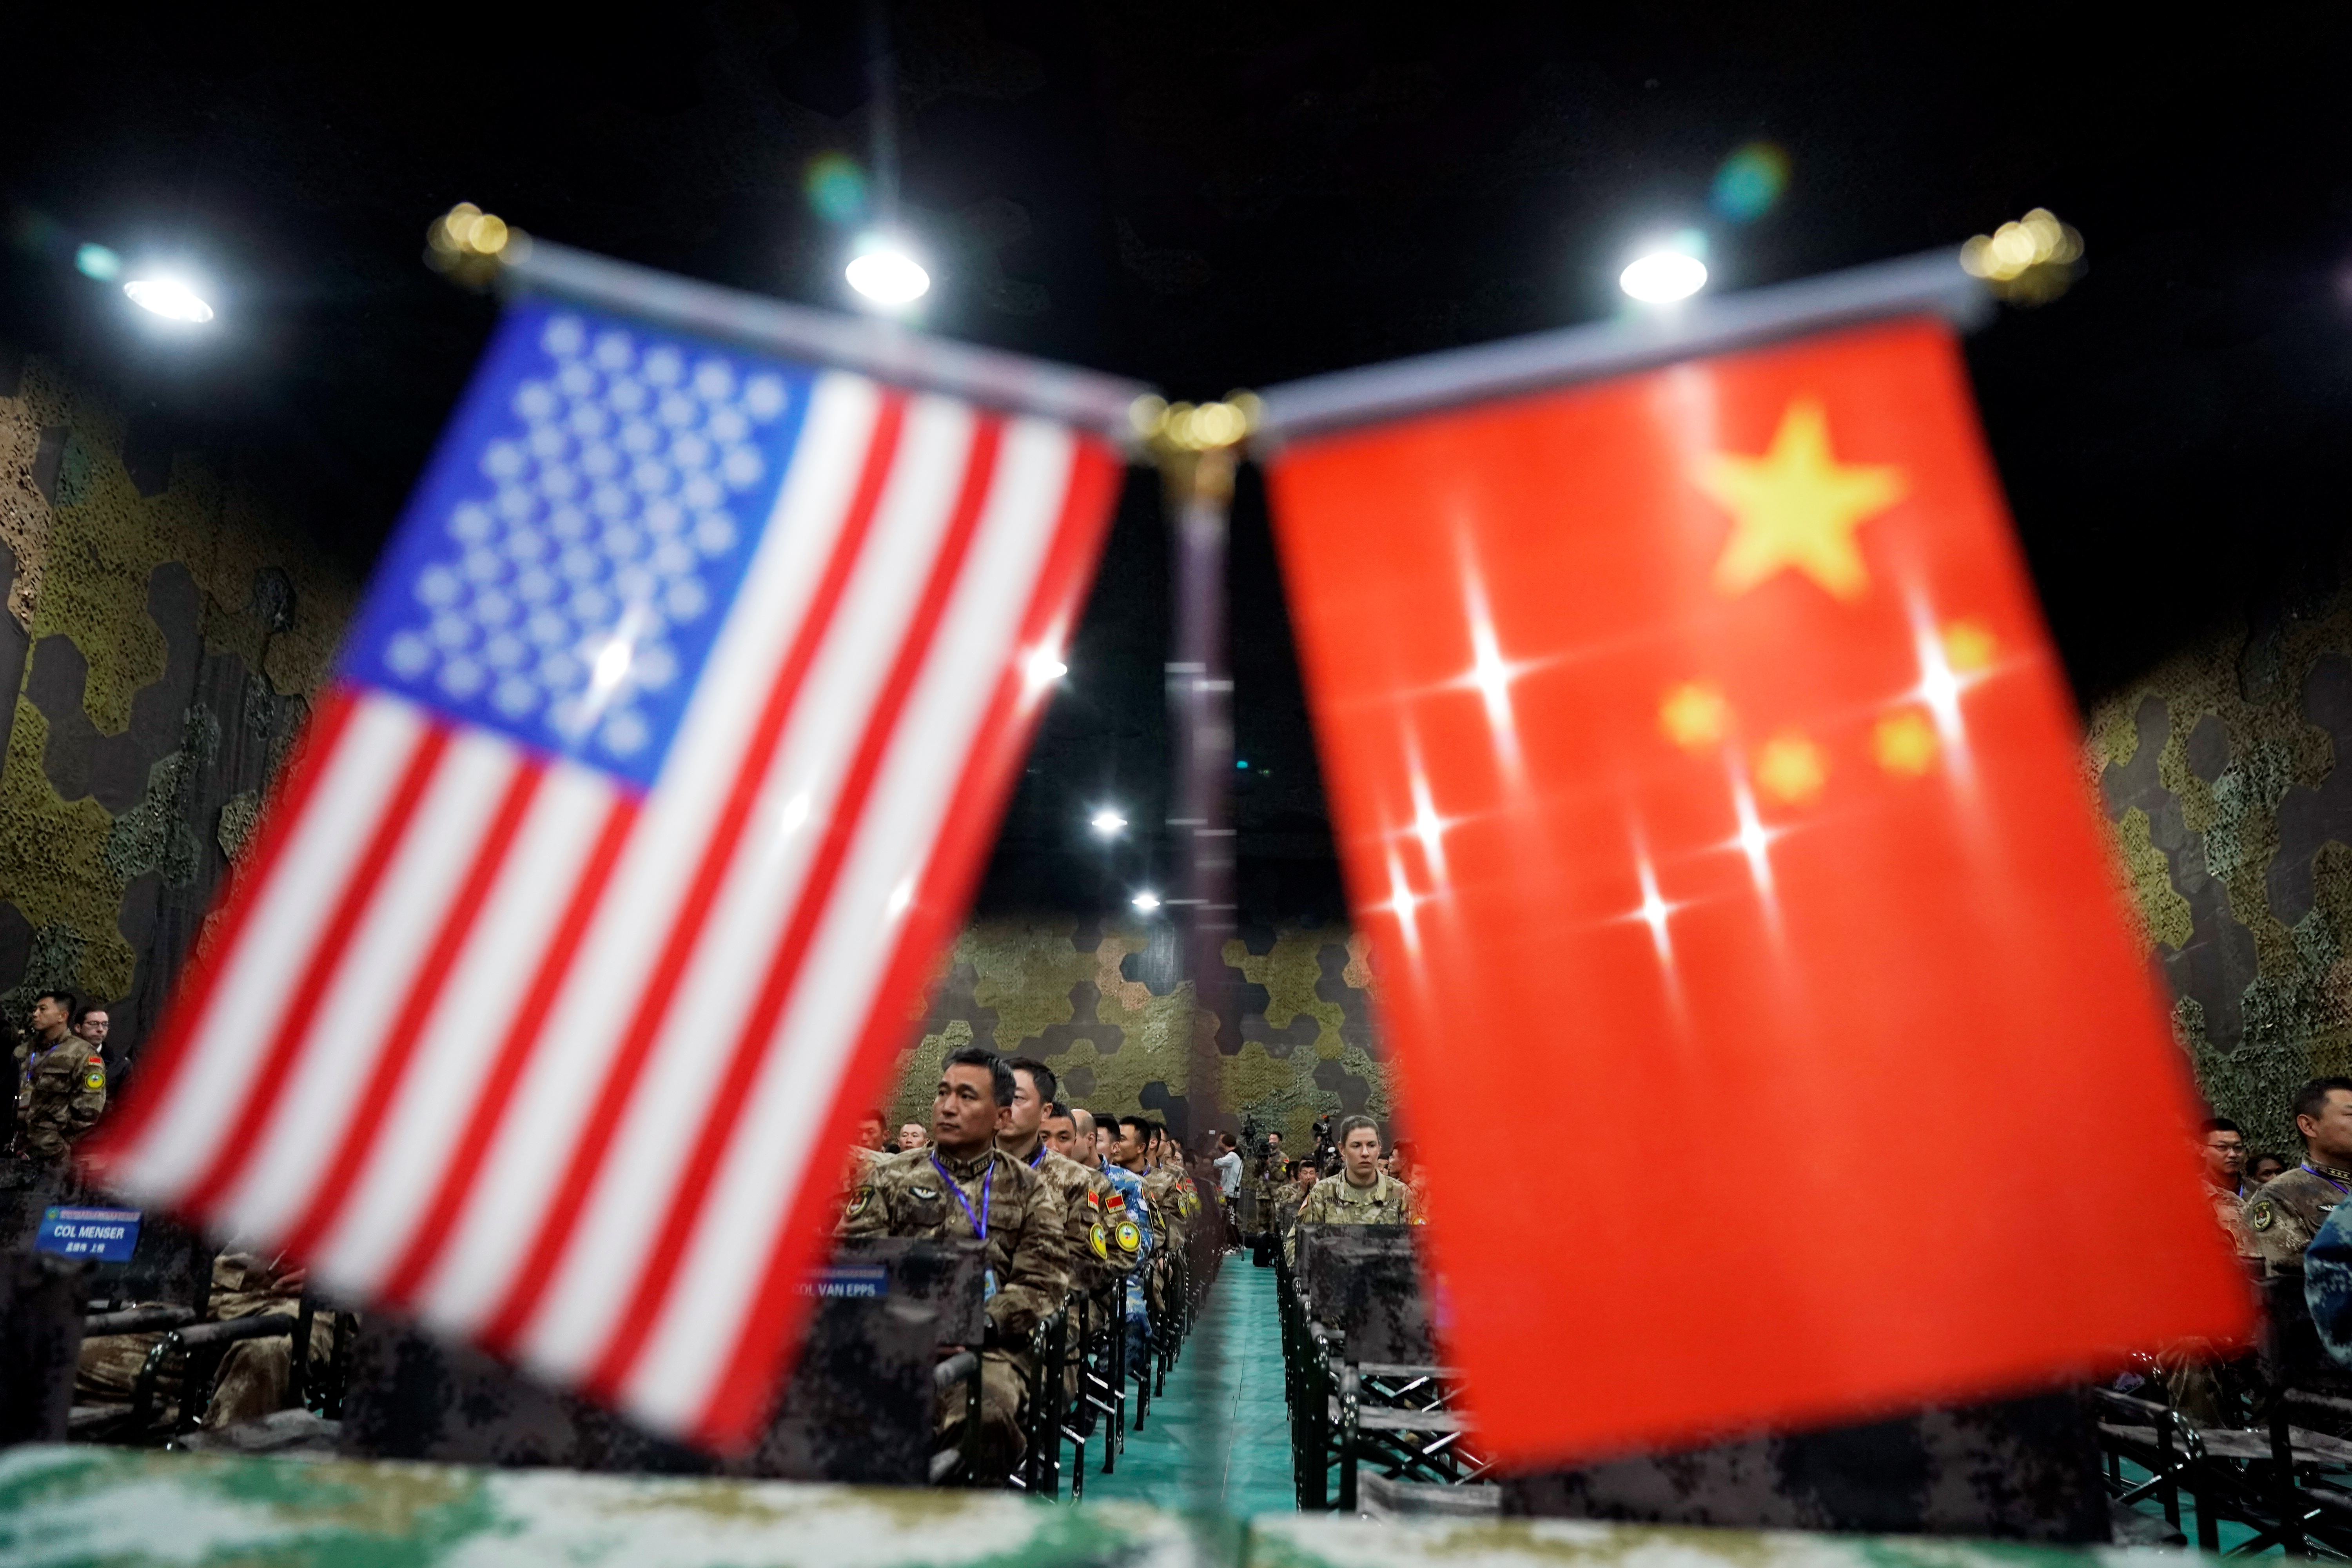 """U.S. Army and China's People's Liberation Army (PLA) military personnel attend a closing ceremony of an exercise of """"Disaster Management Exchange"""" near Nanjing, Jiangsu province, China."""